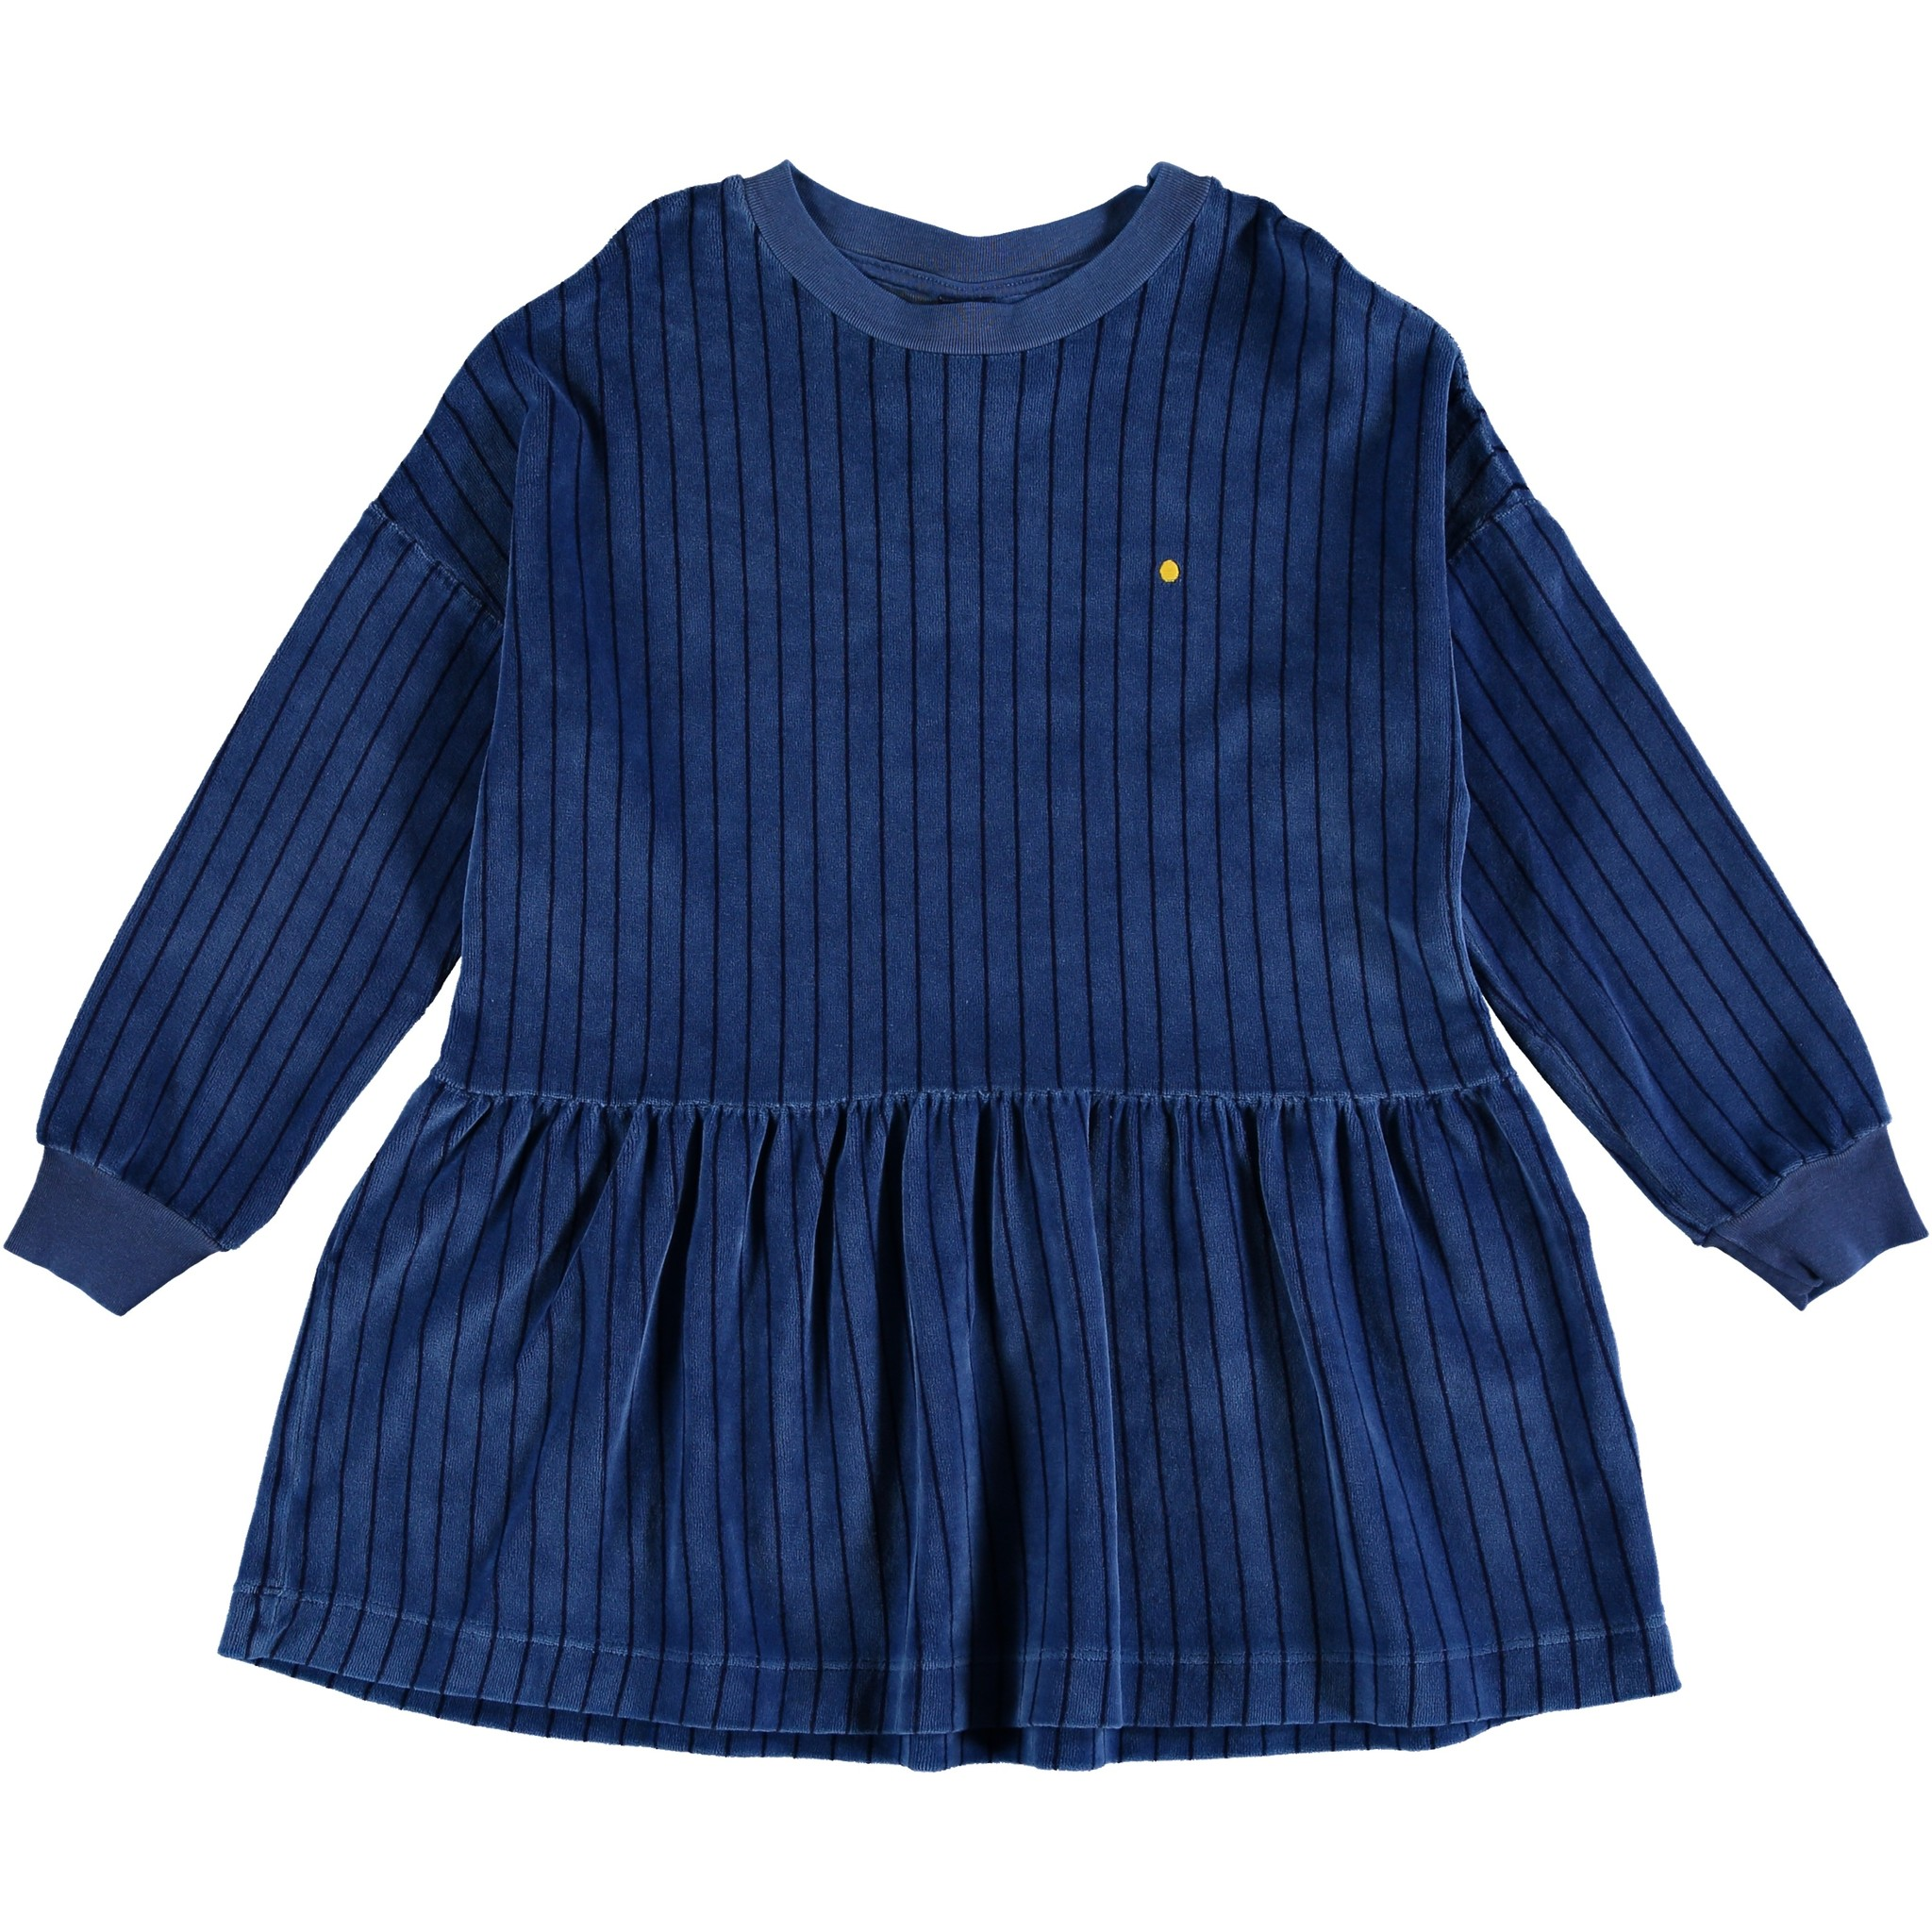 Dress Velvet all over stripes - Sea Blue-1